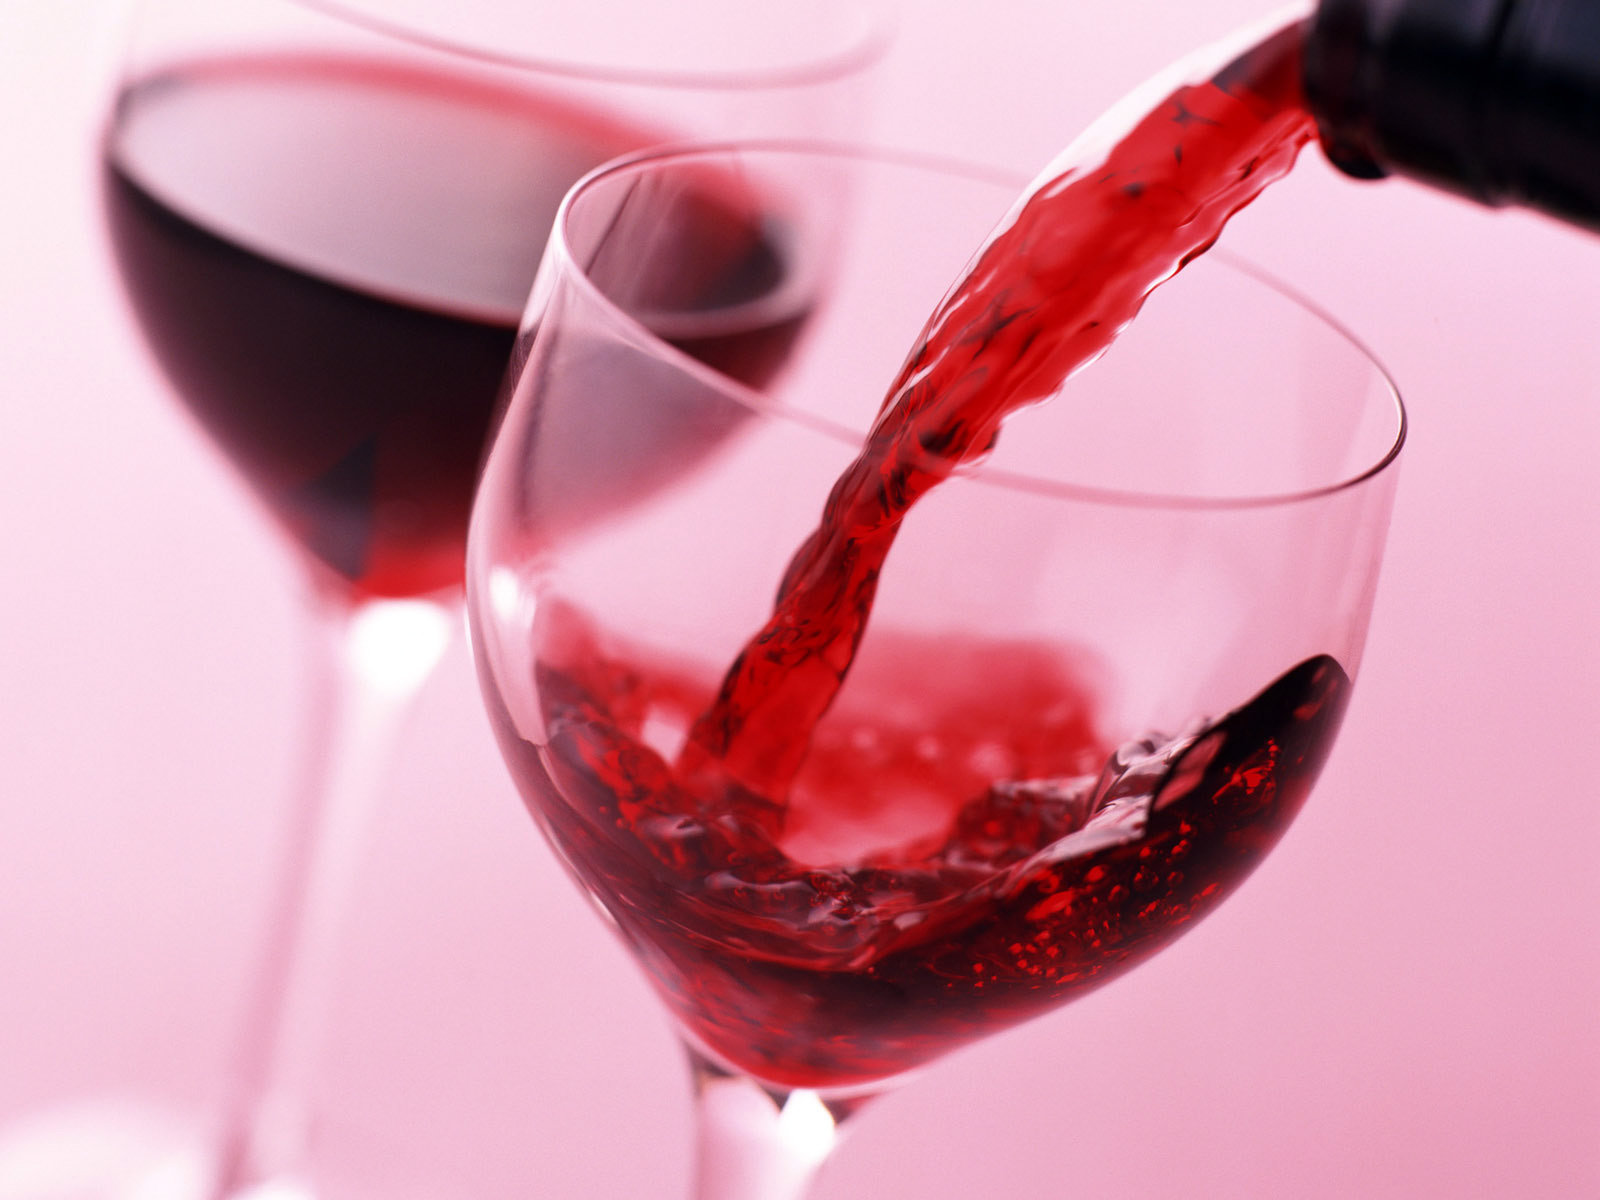 A glass of wine a day keeps the doctor away.